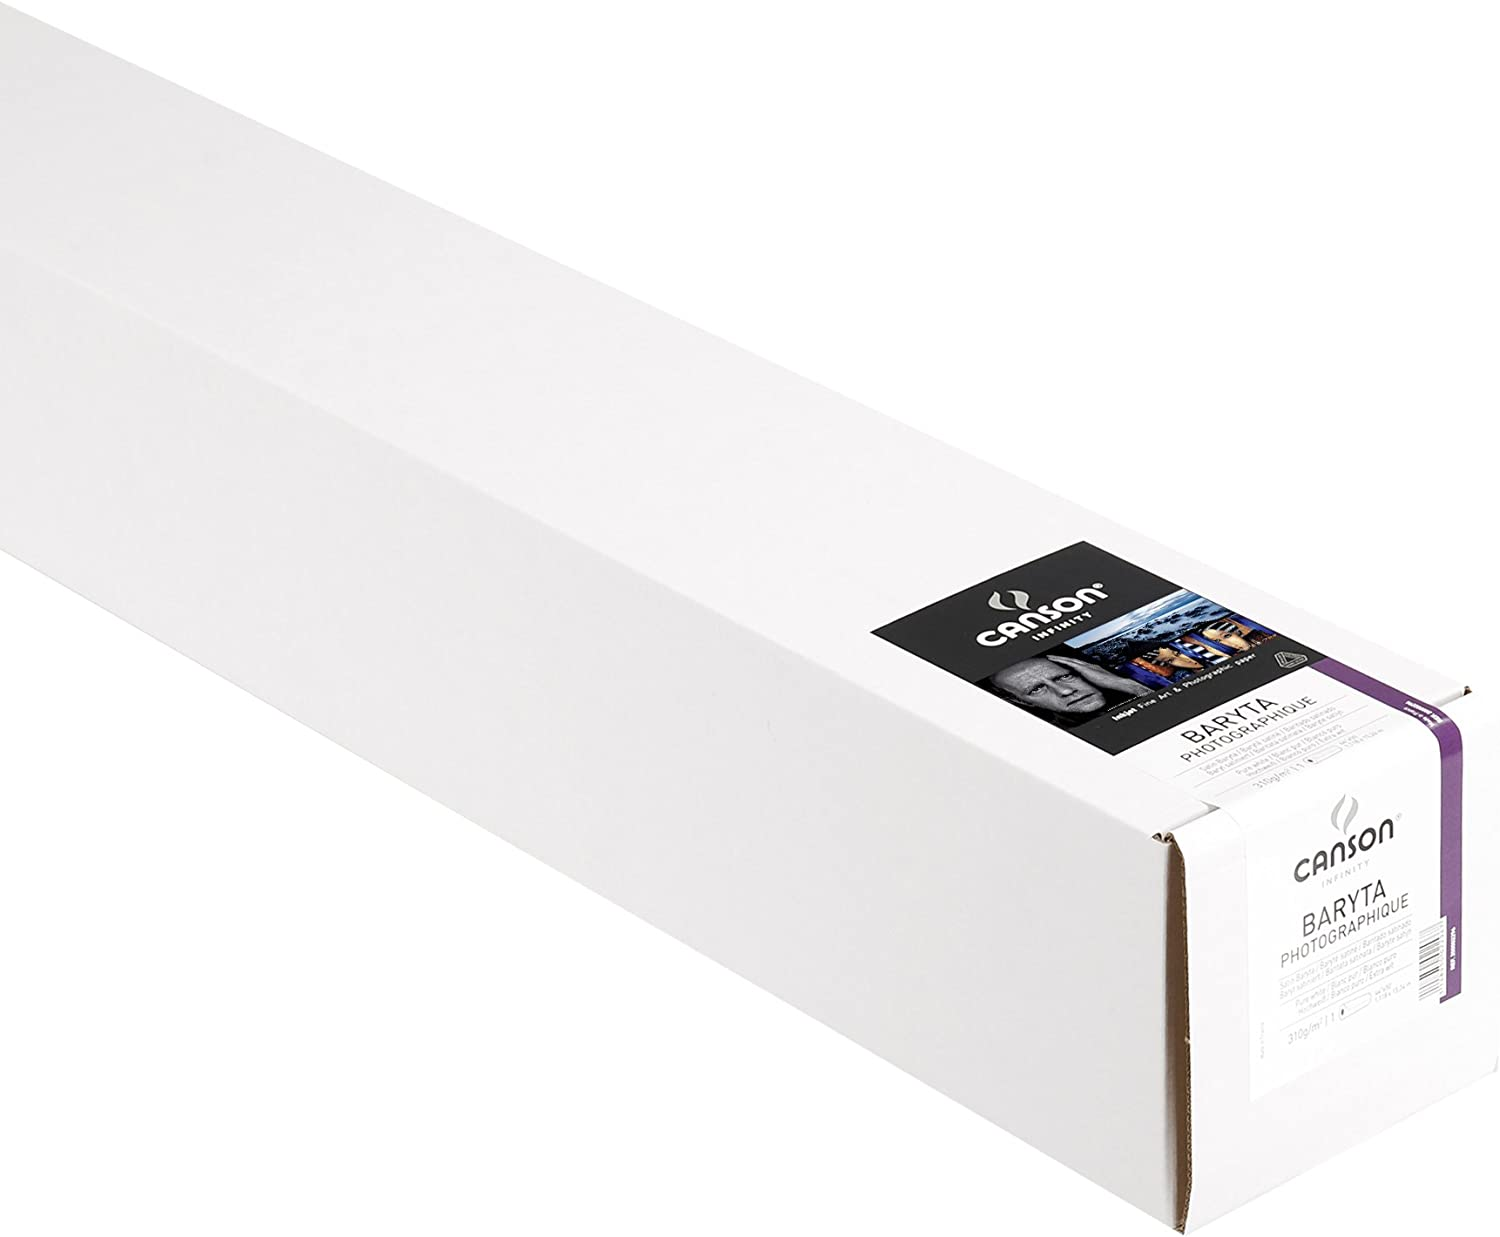 Canson 200002296 Infinity Infinity Infinity Baryta Photographique Papier, 310 g m², 44 Zoll, 1.118 x 15.24 m, weiß B00372HUHY    | Schön In Der Farbe  f373cc